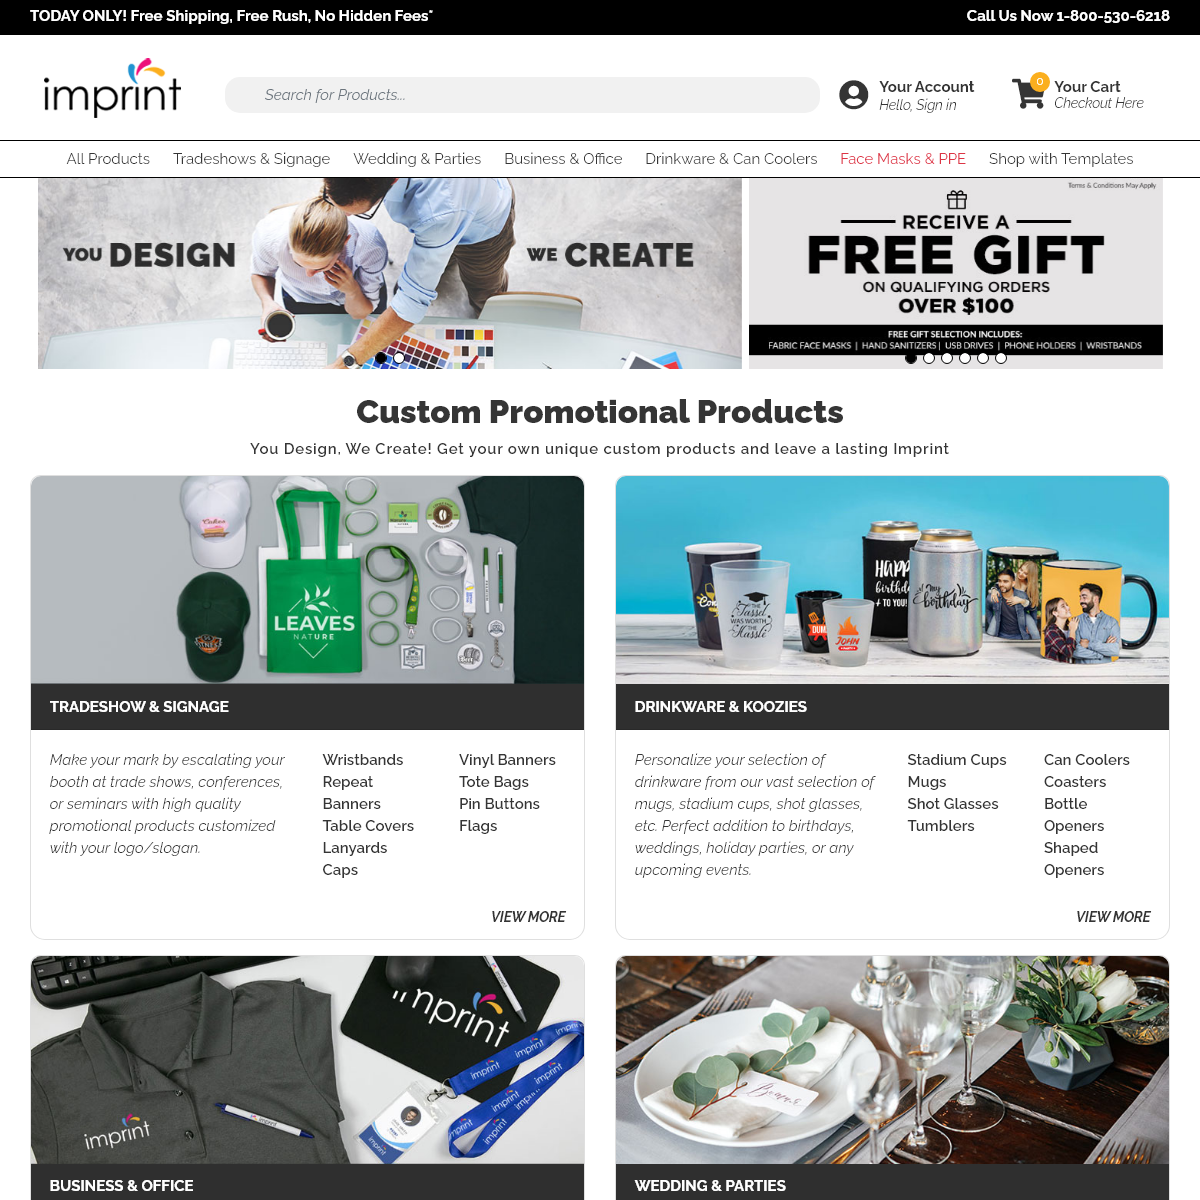 Imprint- Custom Promotional Products - Design Your Own